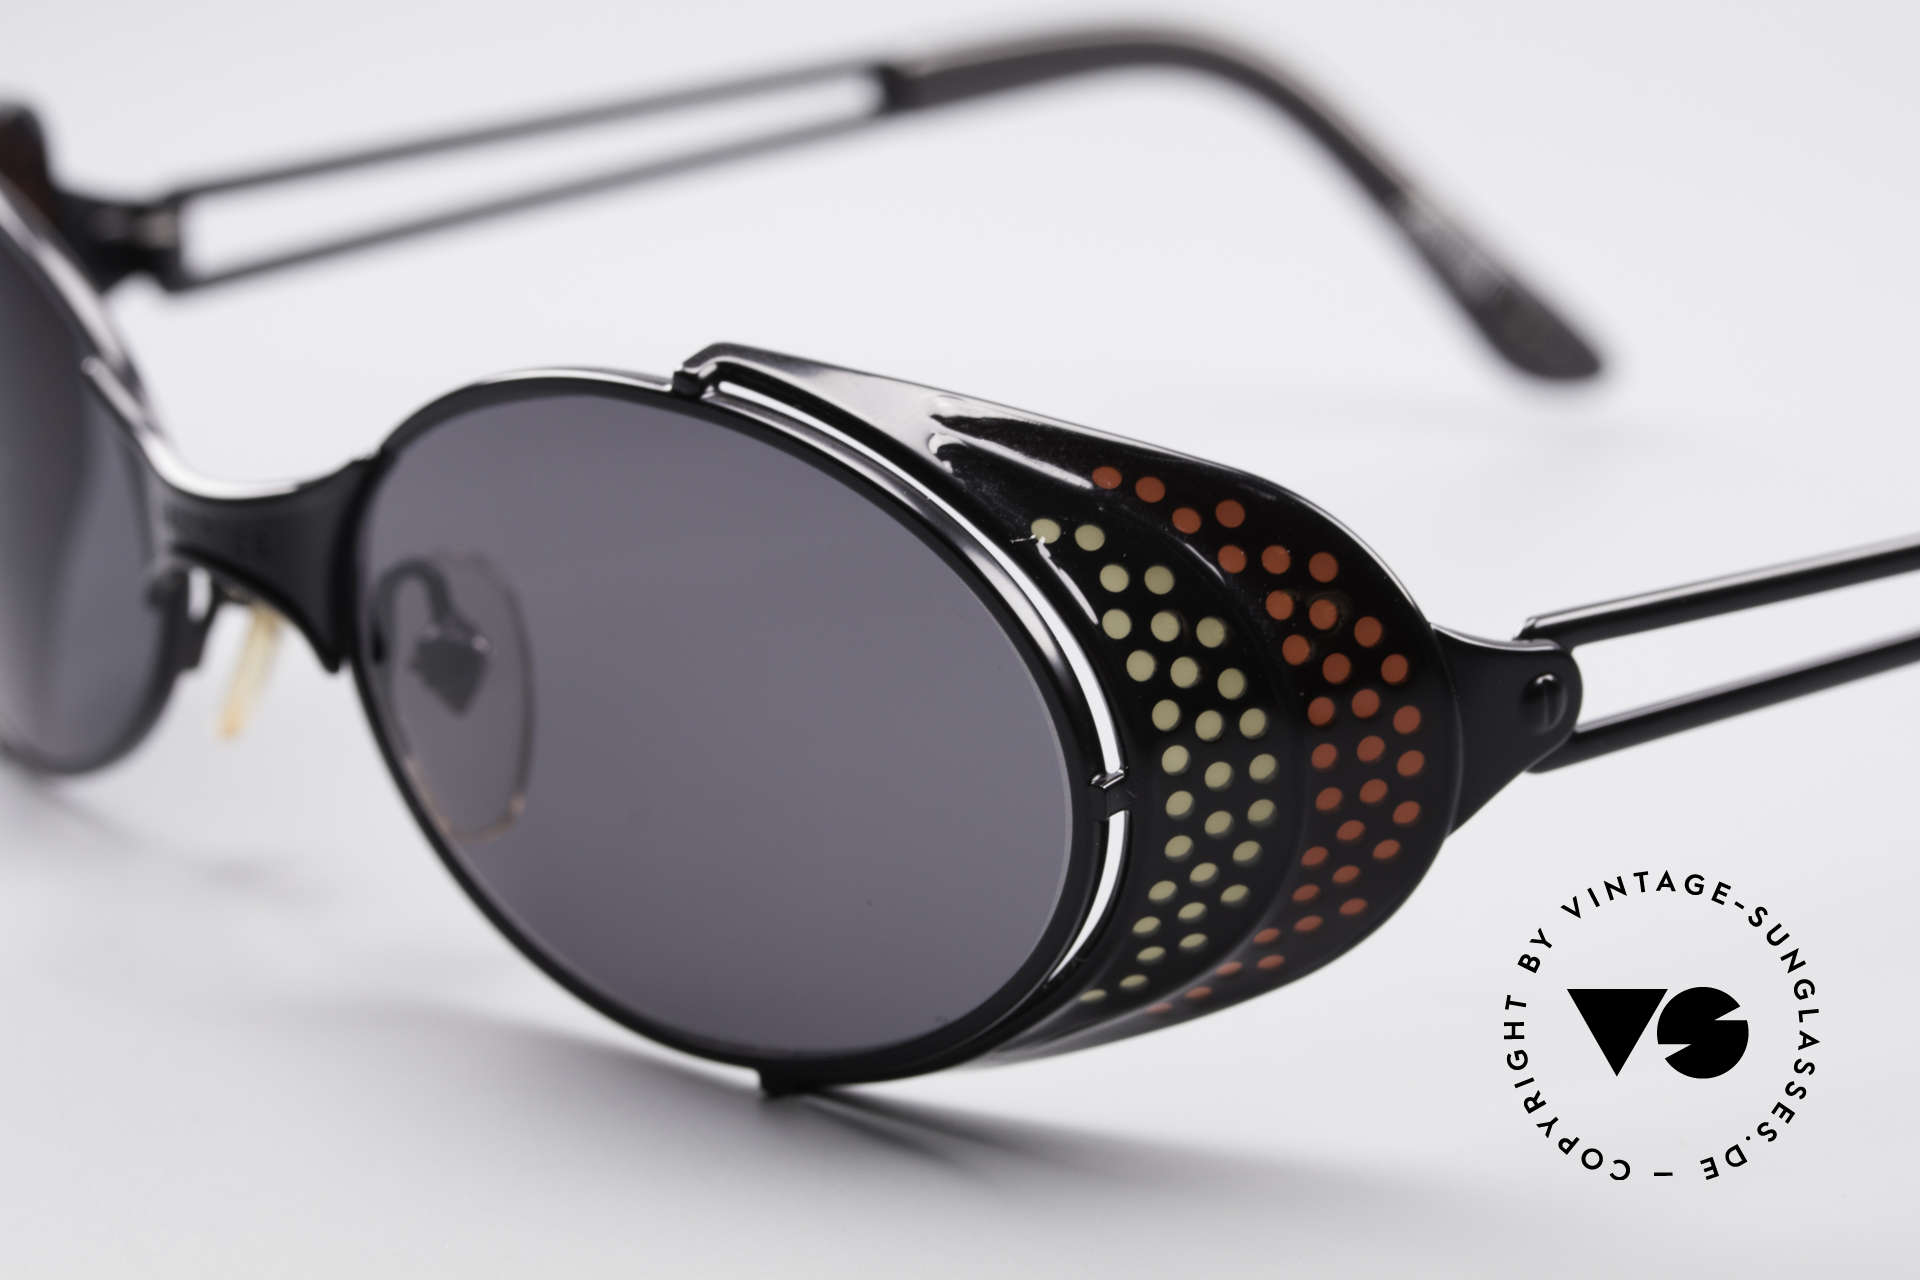 Jean Paul Gaultier 56-7109 JPG Steampunk Sunglasses, tangible high-end craftsmanship; frame made in Japan!, Made for Men and Women